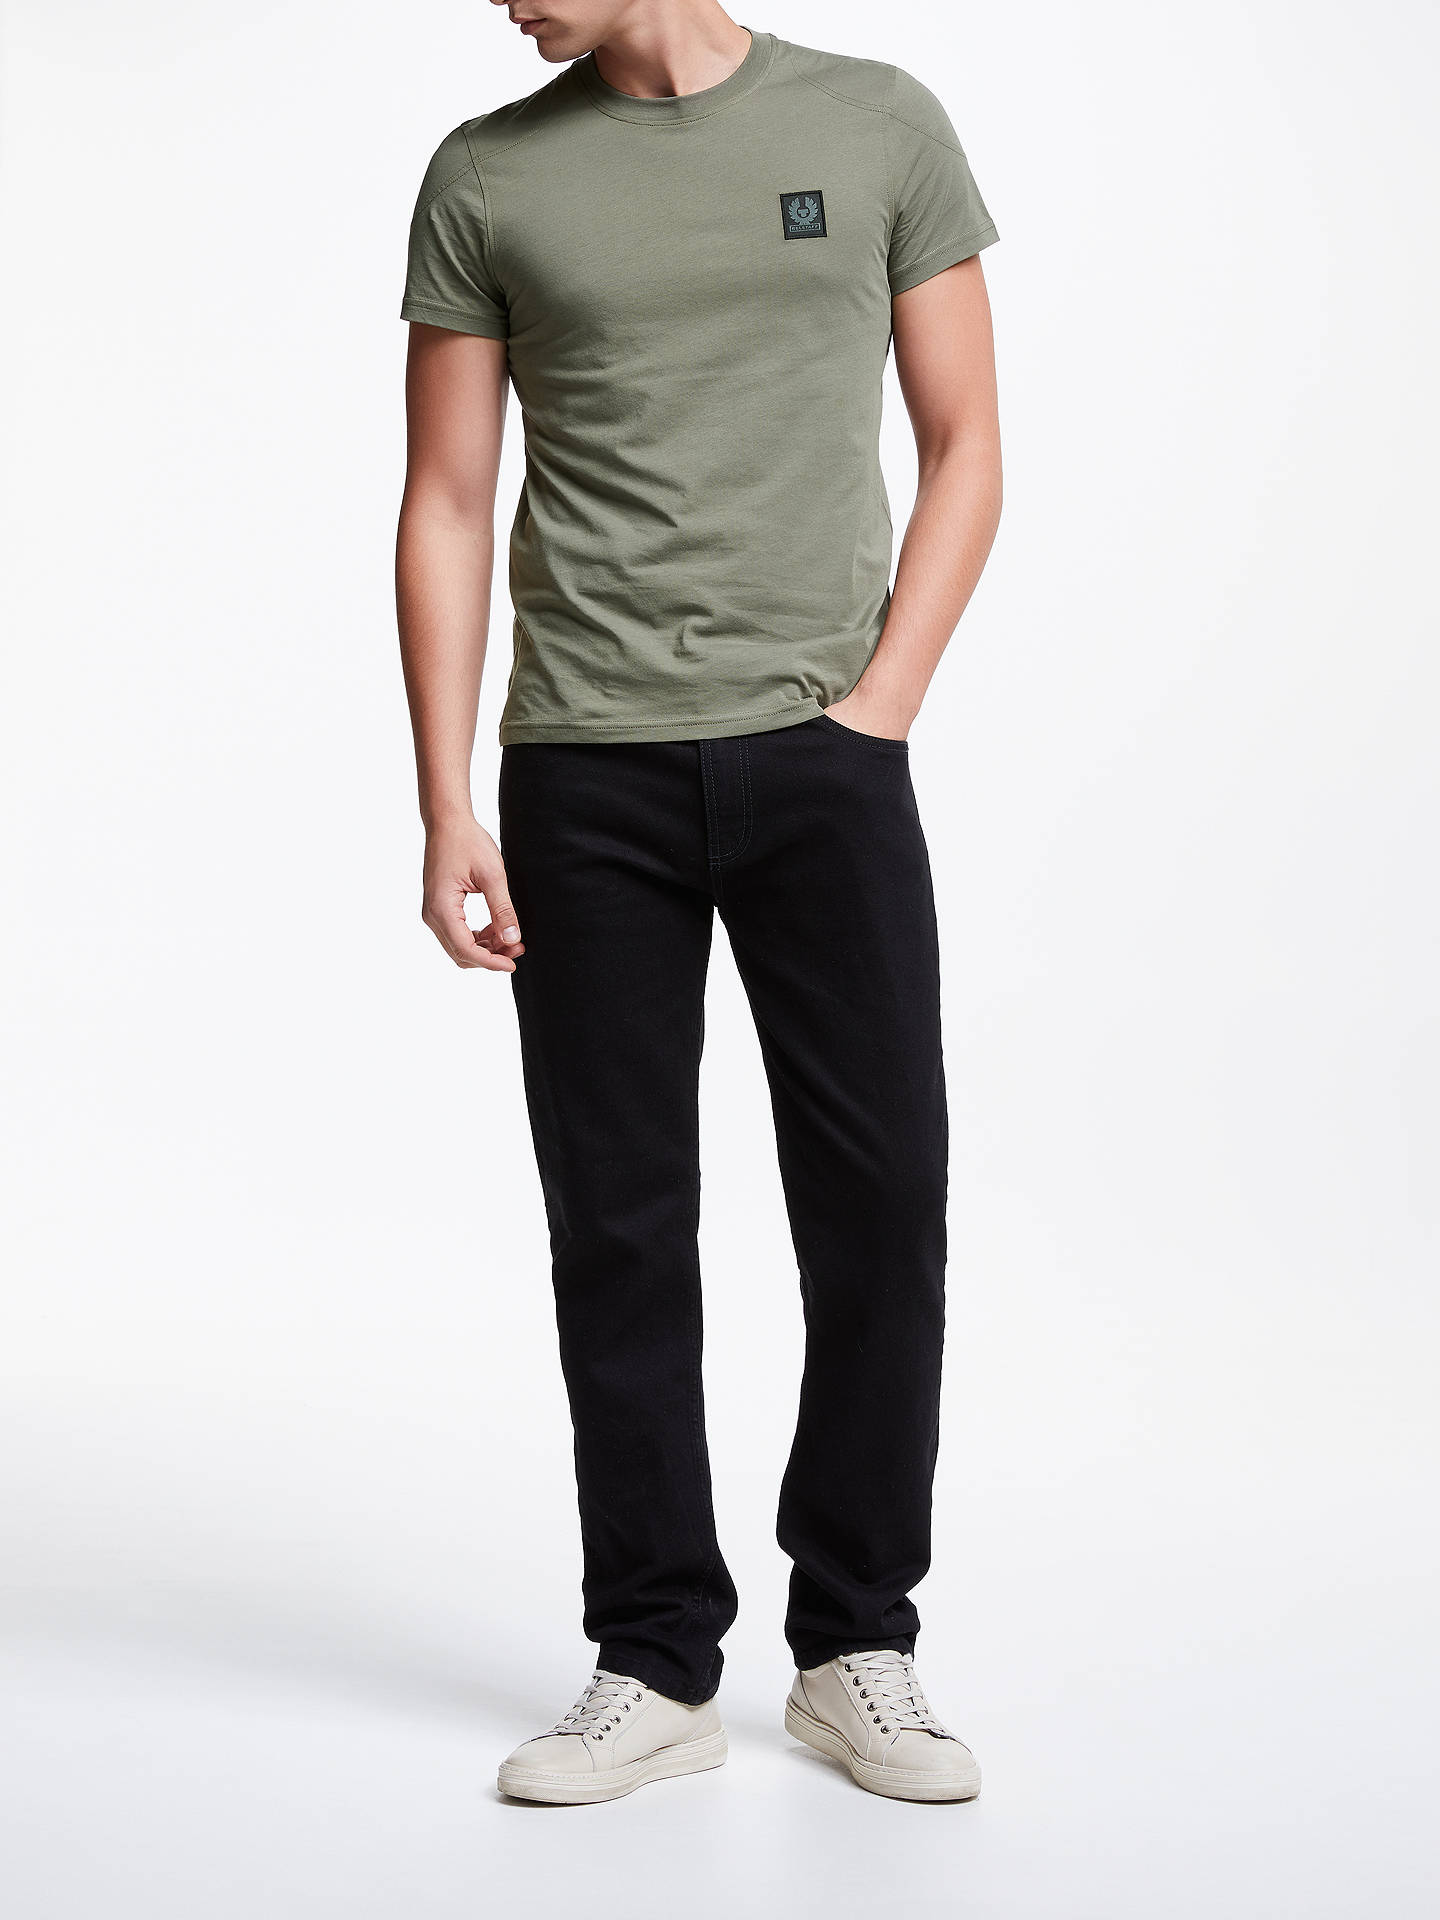 BuyBelstaff Throwley Short Sleeve T-Shirt, Green Smoke, S Online at johnlewis.com